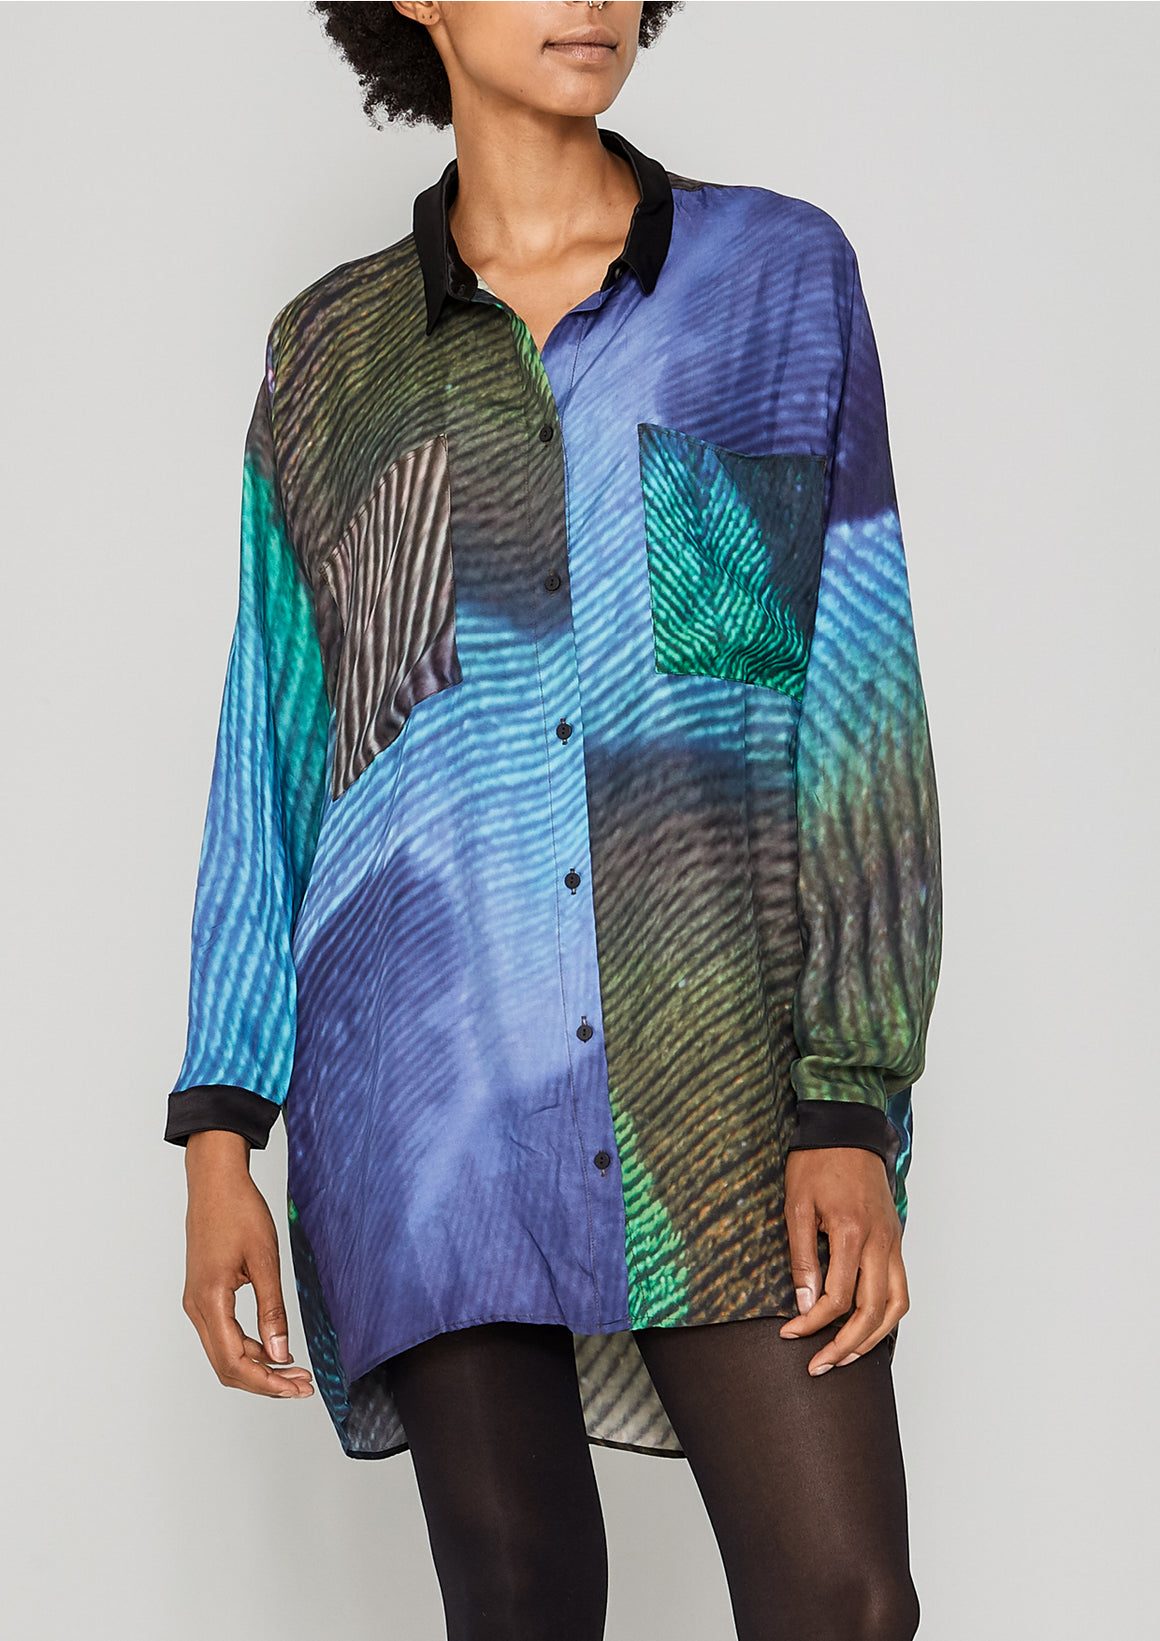 BLOUSE COLLAR - SILKY CUPRO printed peacock